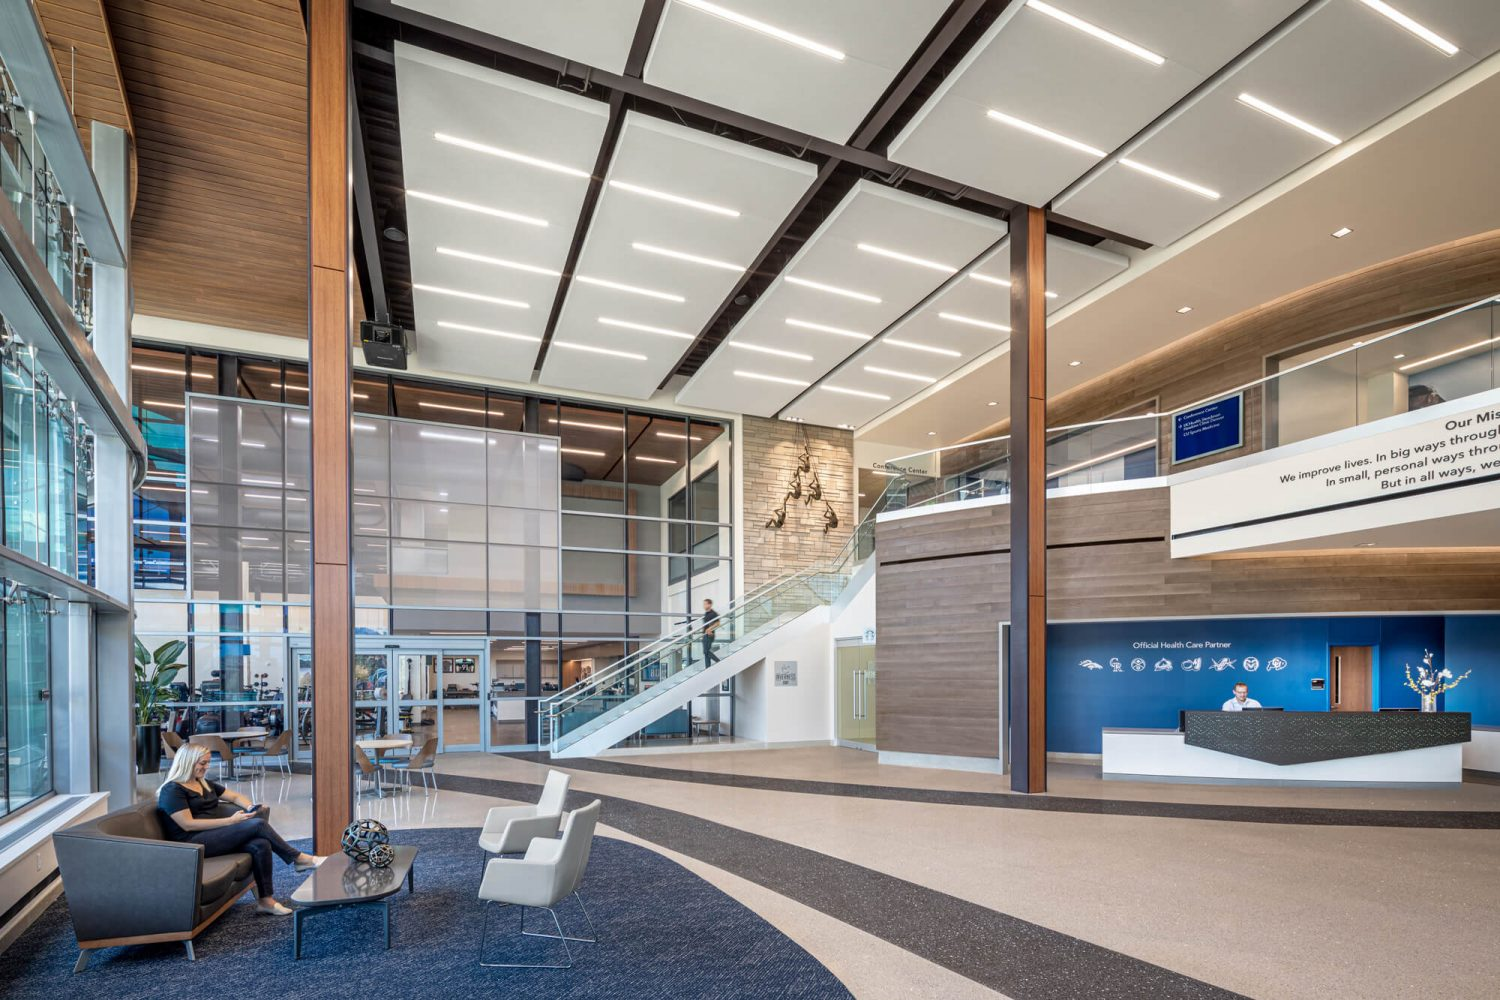 UCHealth Inverness Location Lobby from 1st floor